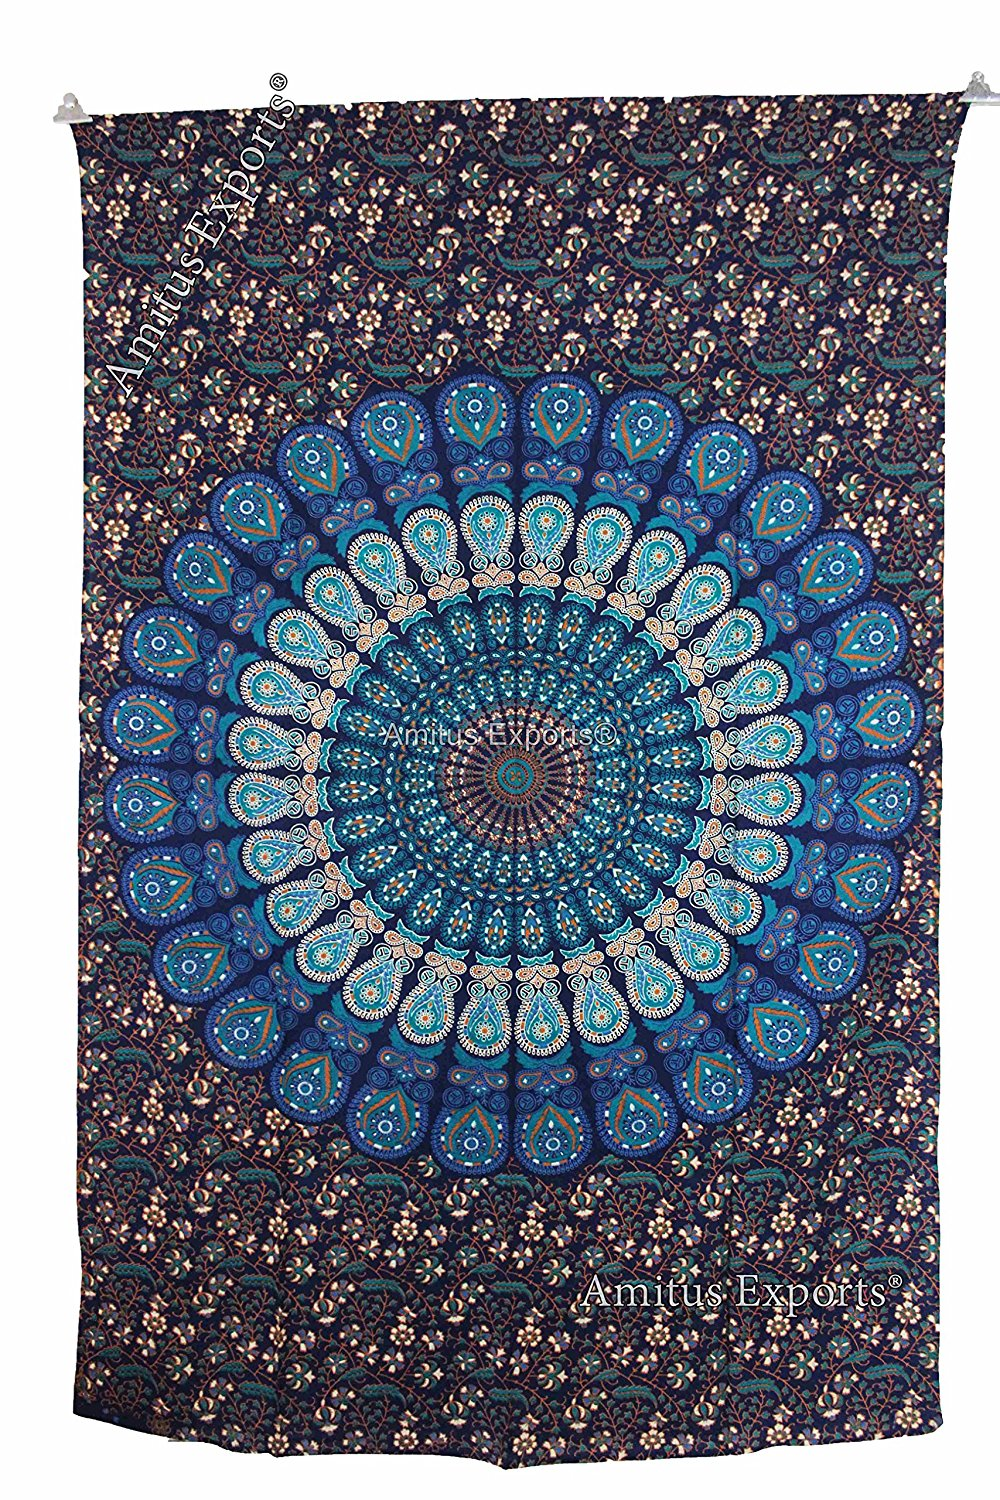 """Amitus Exports(TM) 1 X Peacock Flower Indian Tapestry 80""""X53"""" Approx. Inches Blue Multi Color Twin Size Cotton Fabric Multi-Purpose Handmade Tapestry Hippy Indian Mandala Throws Bohemian Tapestries"""